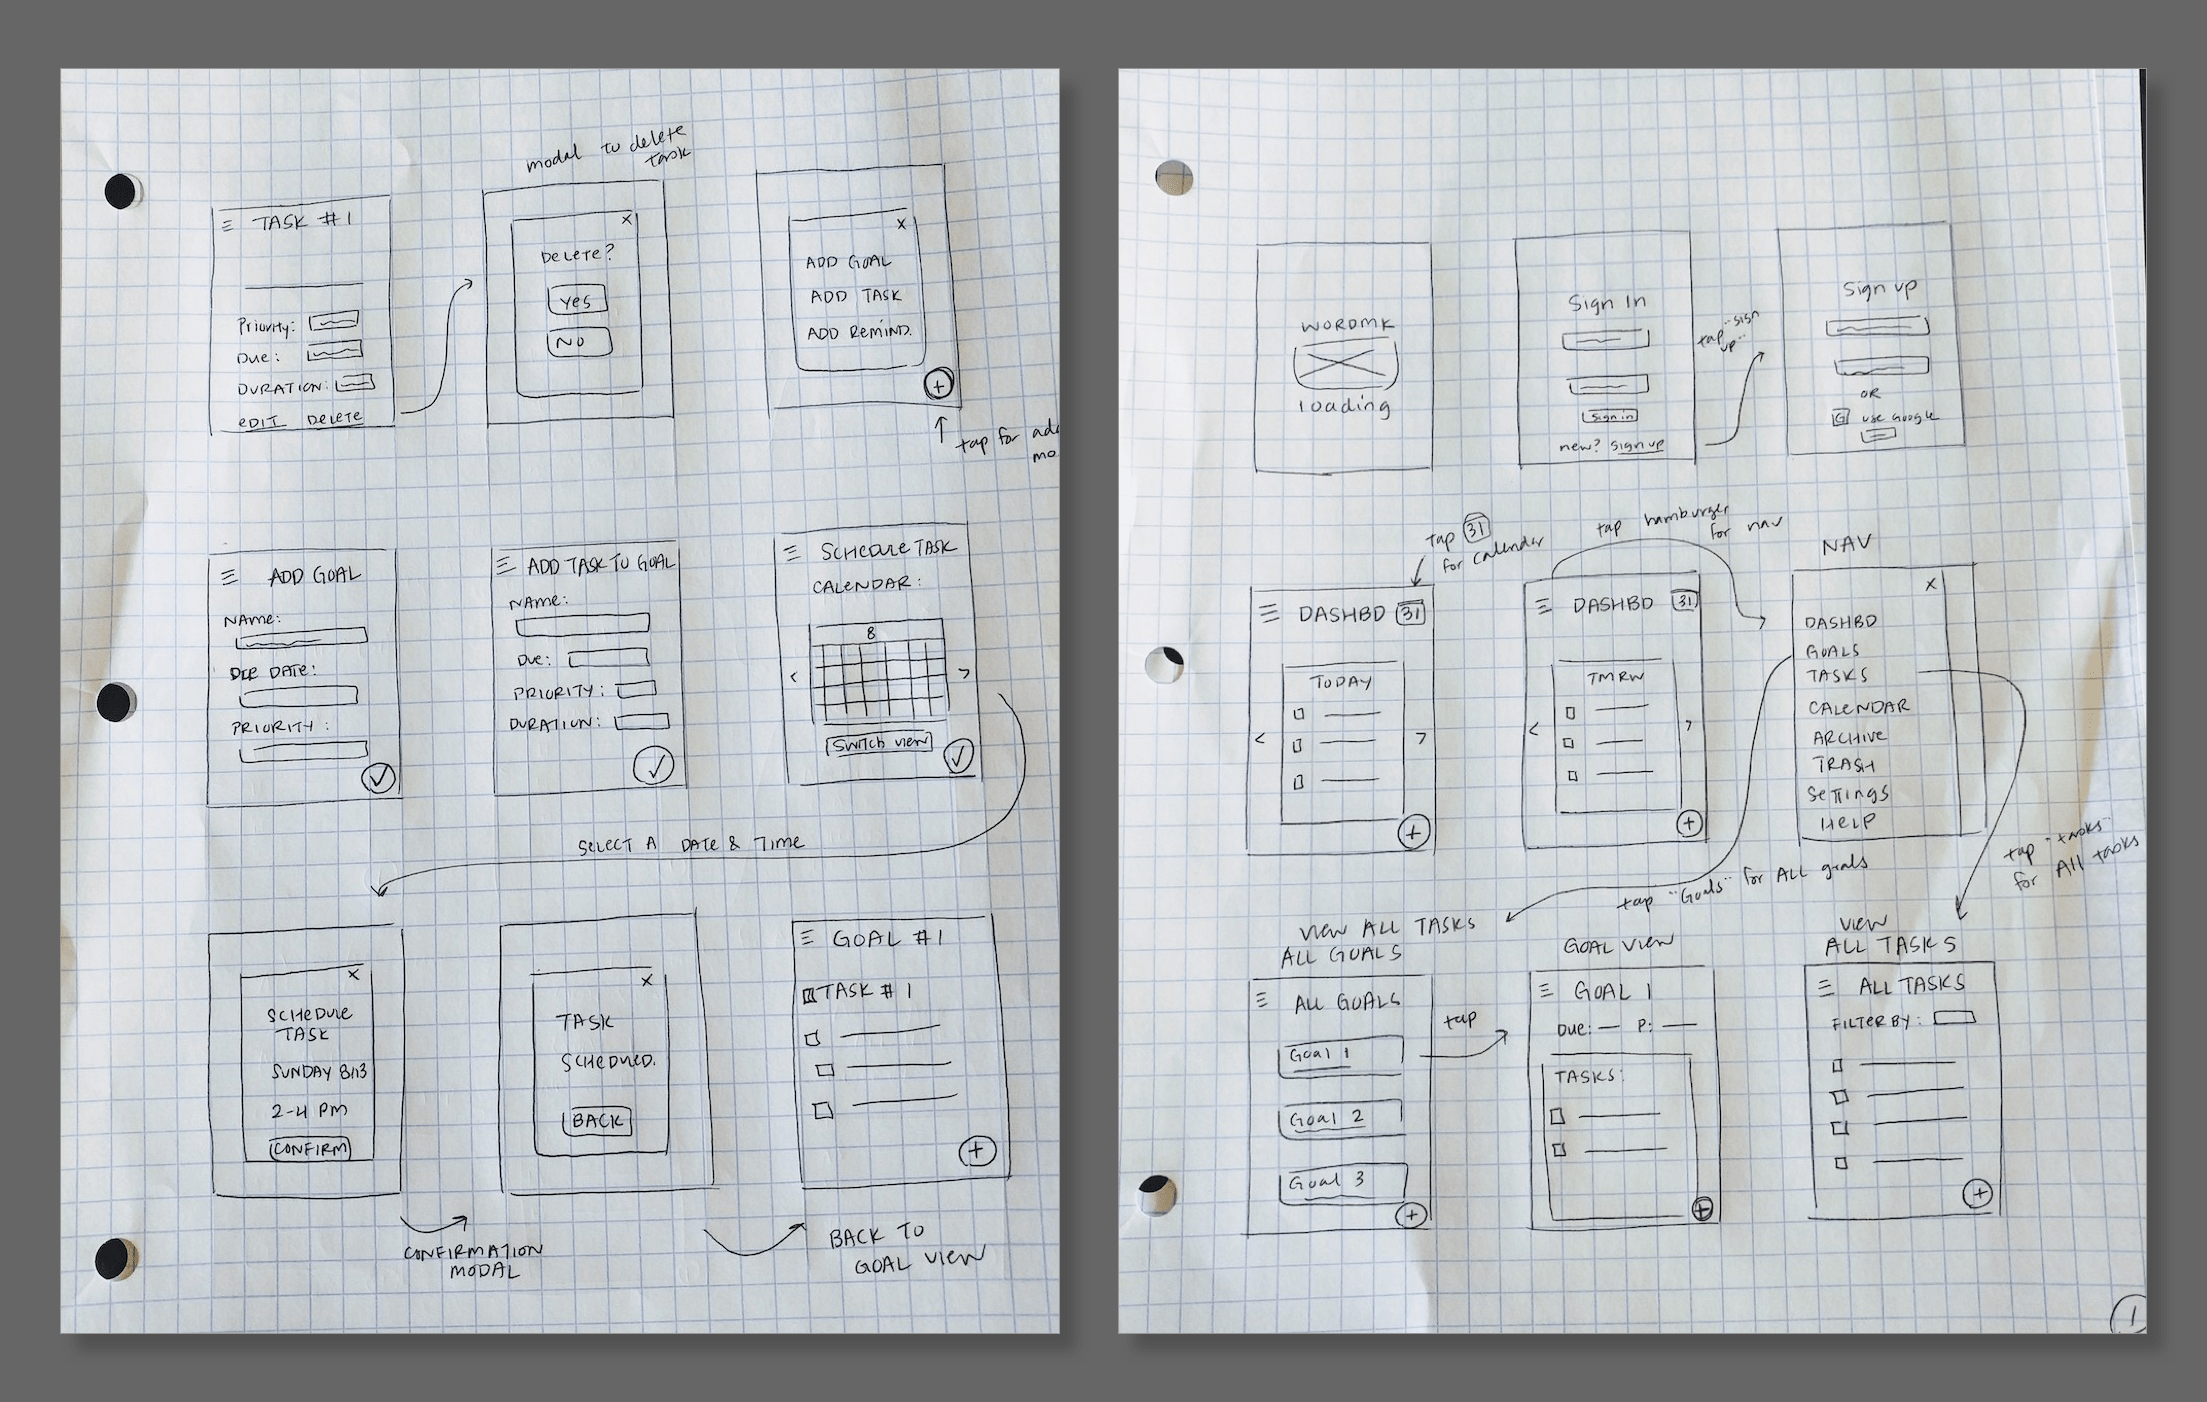 Two sets of handwritten sketches of app screens, with arrows and annotations connecting screens to one another.